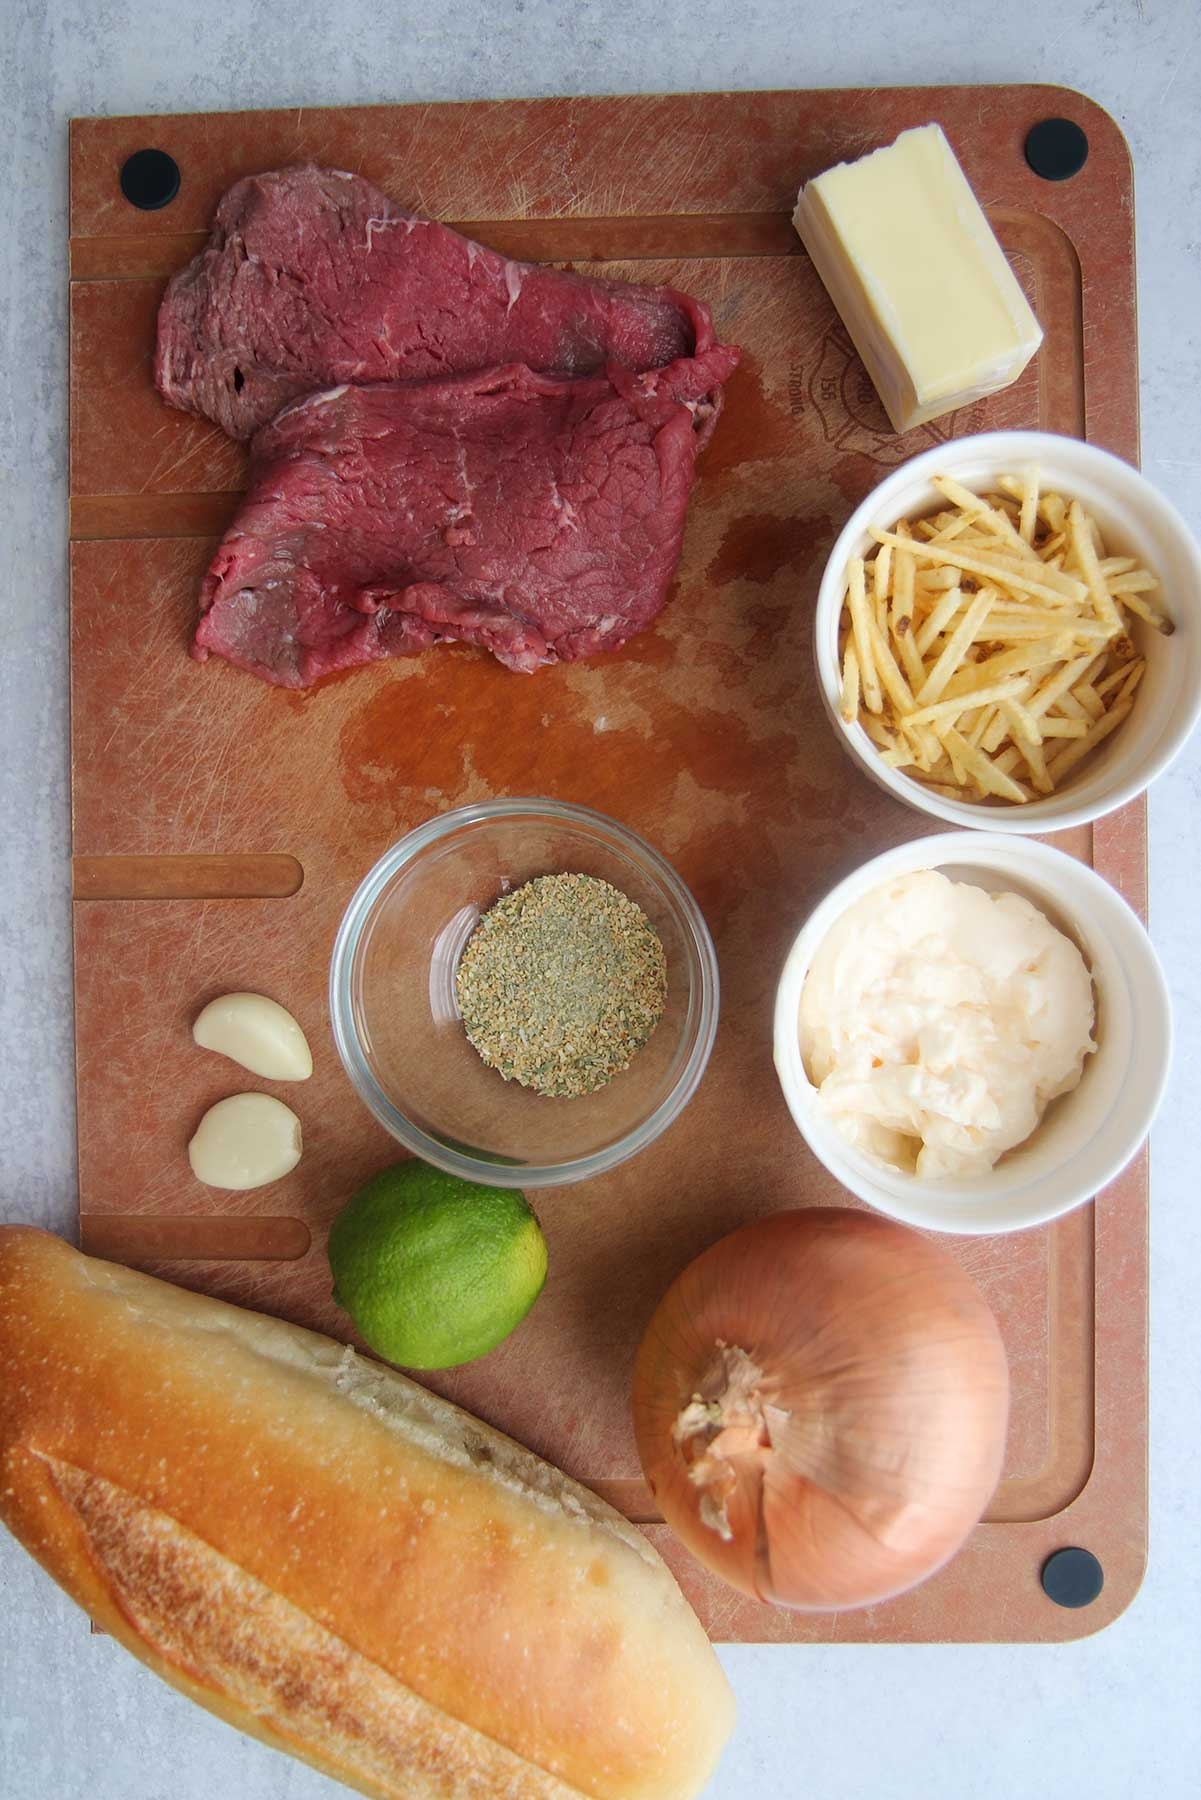 ingredients for pan con bistec. Spices in a small bowl, mayo in a bowl, steaks, lime, garlic, onion, butter, and potato straws.